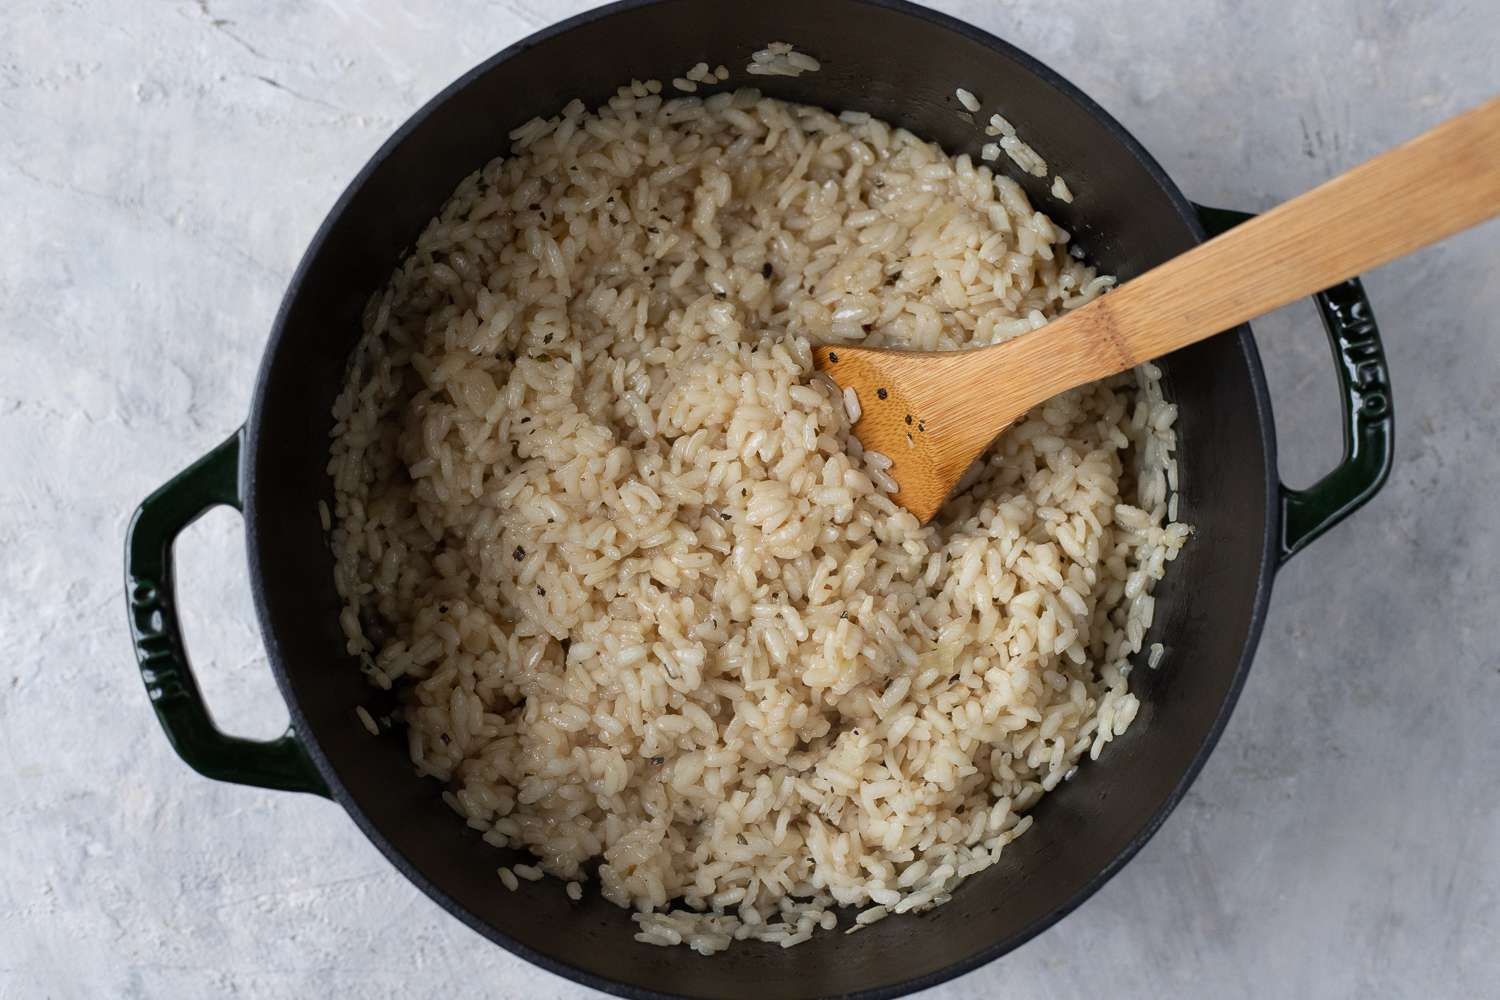 Risotto in a saucepan with a wooden spoon